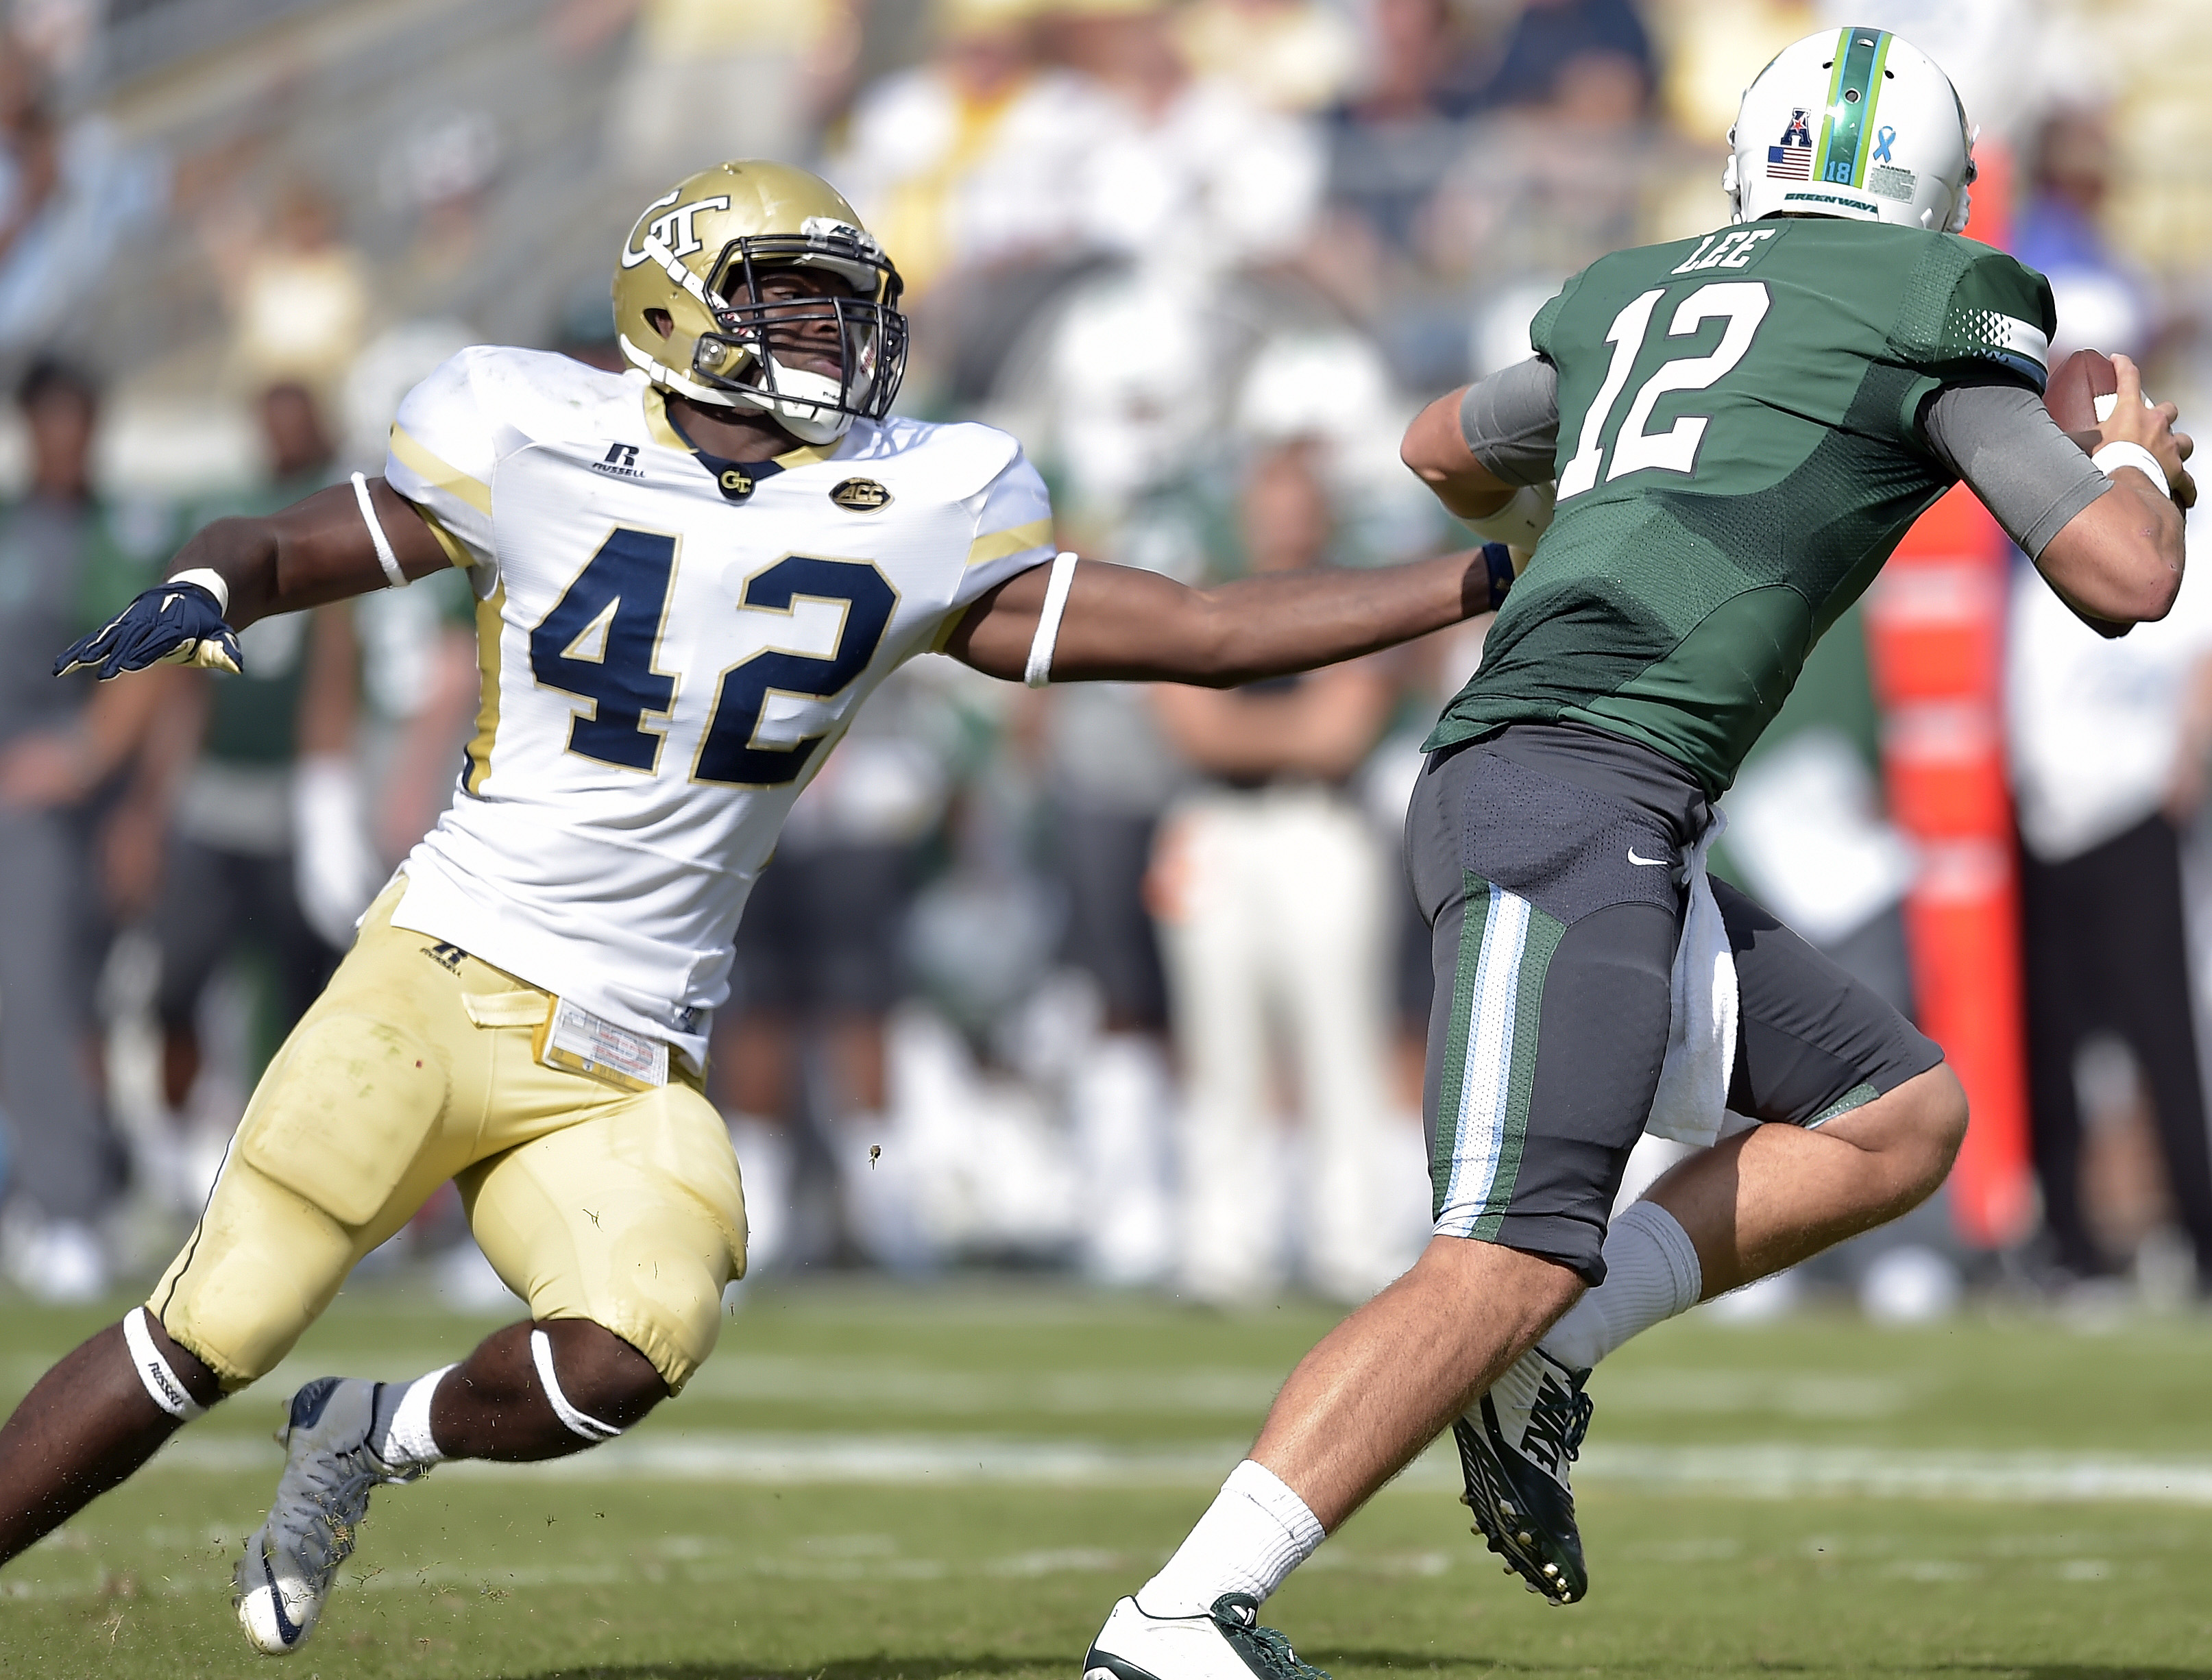 FILE - In this Sept. 12, 2015, file photo, Tulane quarterback Tanner Lee (12) runs out of the pocket as Georgia Tech defensive end KeShun Freeman (42) rushes in during the first half of an NCAA college football game in Atlanta. Freeman returns as third-ye